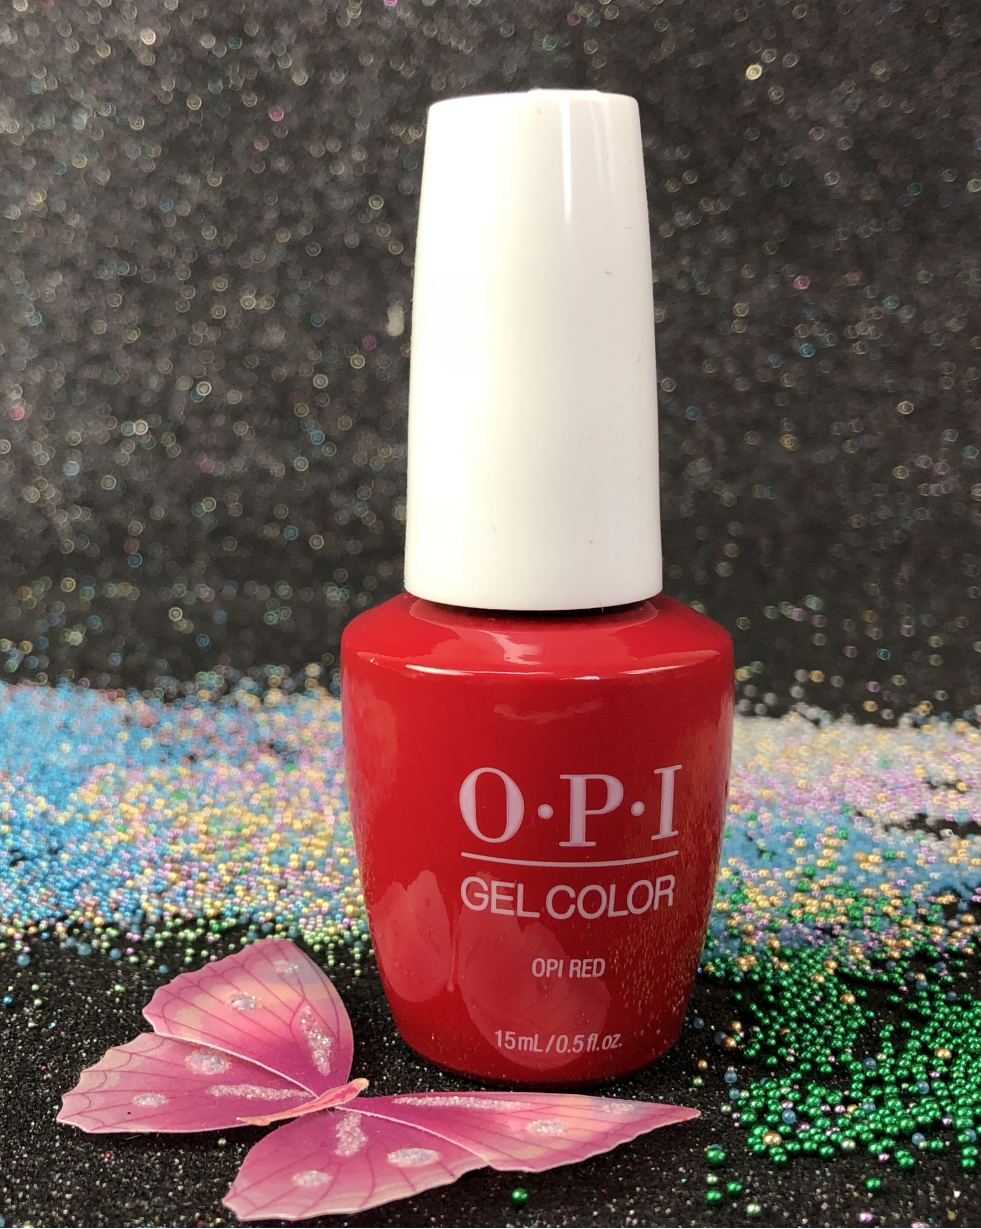 OPI OPI Red GCL72 Gel Color New Look I Gel-nails.com